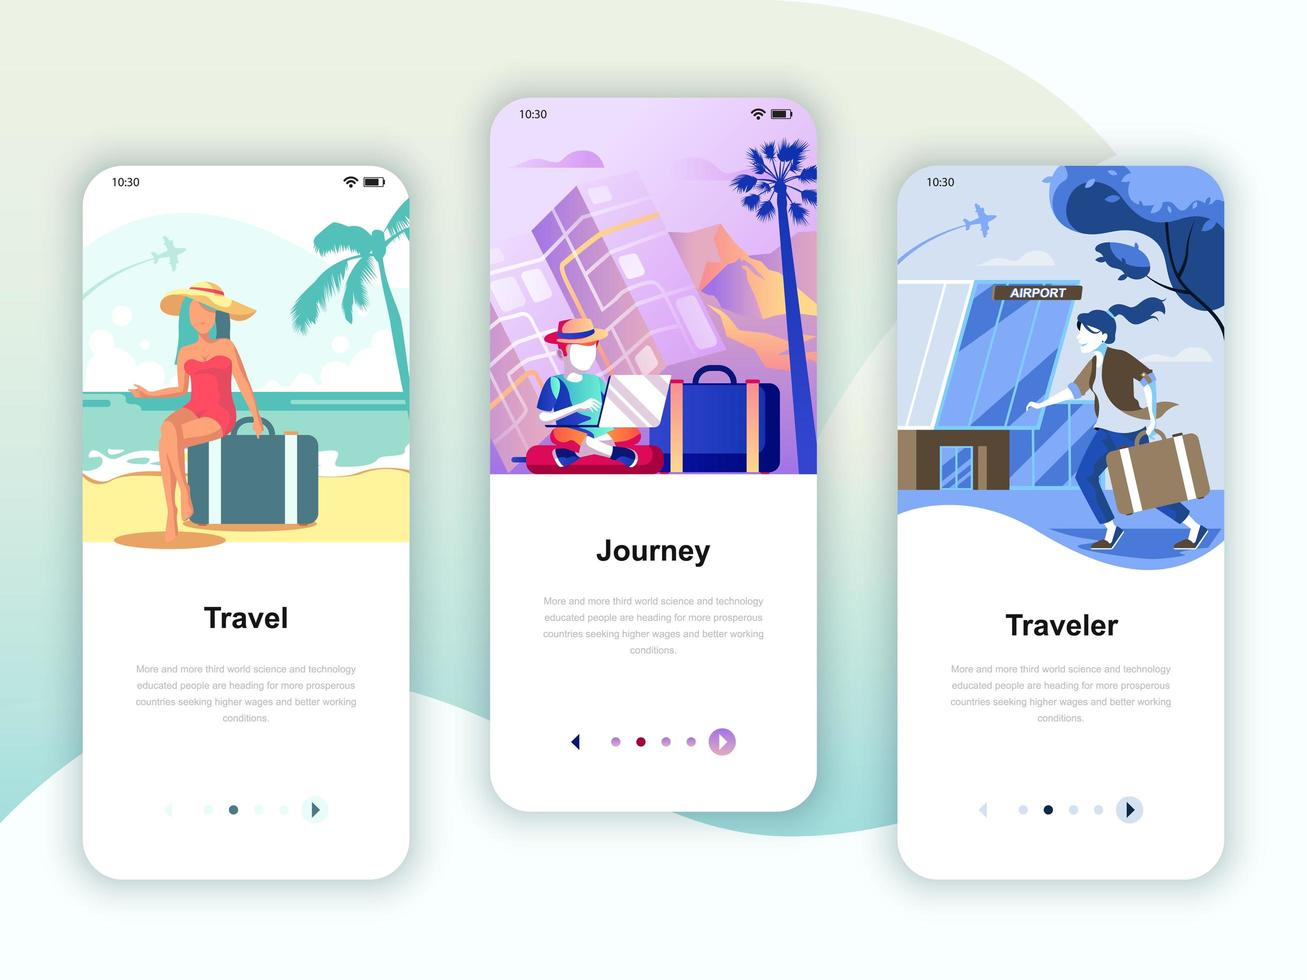 Set of onboarding screens user interface kit for Travel, Journey, Traveler, mobile app templates concept. Modern UX, UI screen for mobile or responsive web site. Vector illustration.